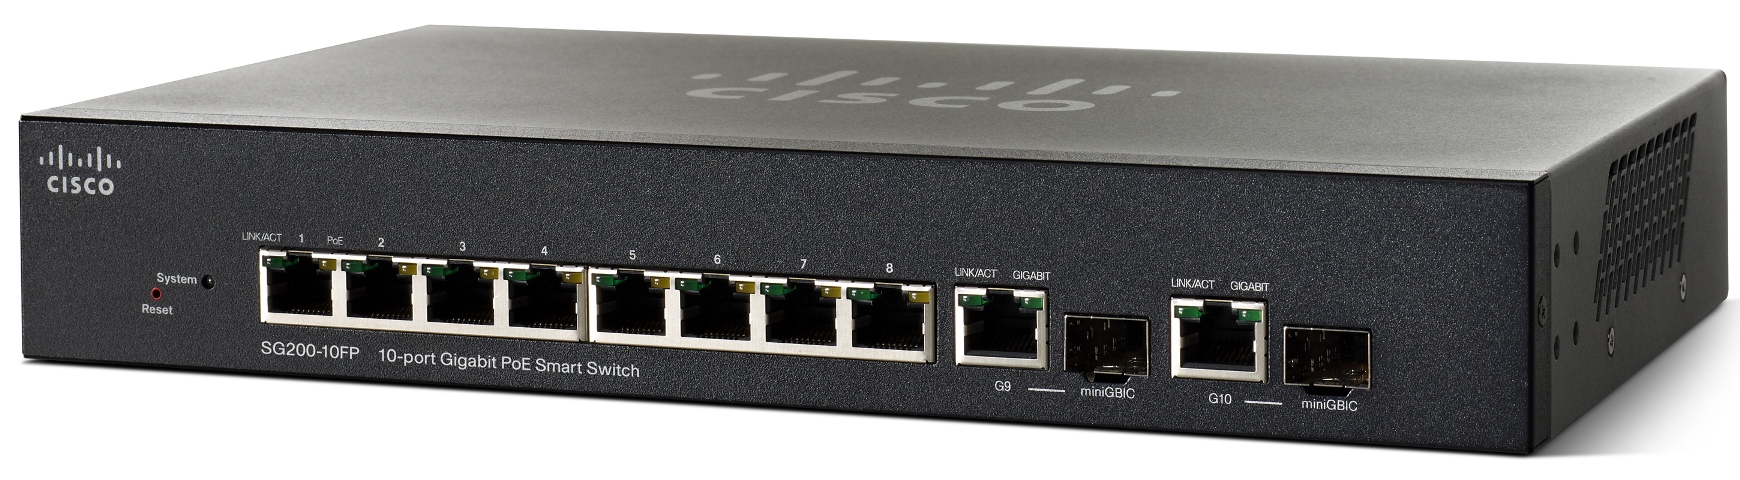 Cisco SG200-10FP, 10xGbit PoE Smart, SG200-10FP-EU